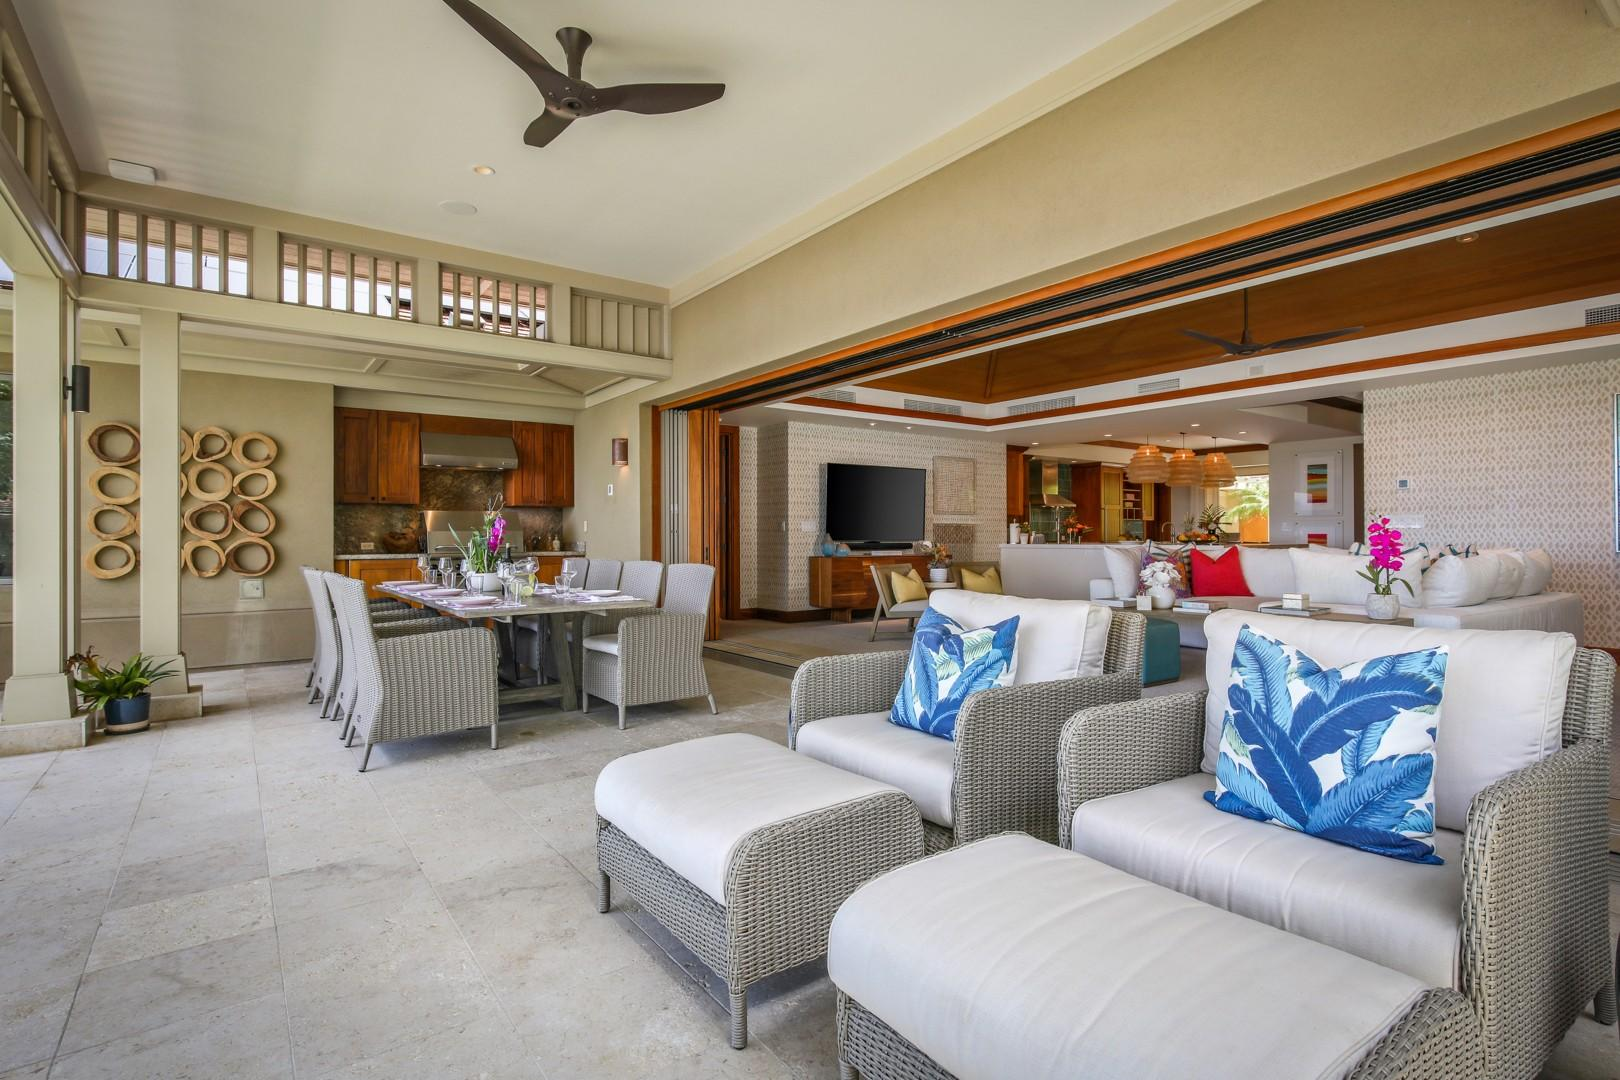 Elegant lounge seating and a gorgeous formal dining table with BBQ grill and prep area.